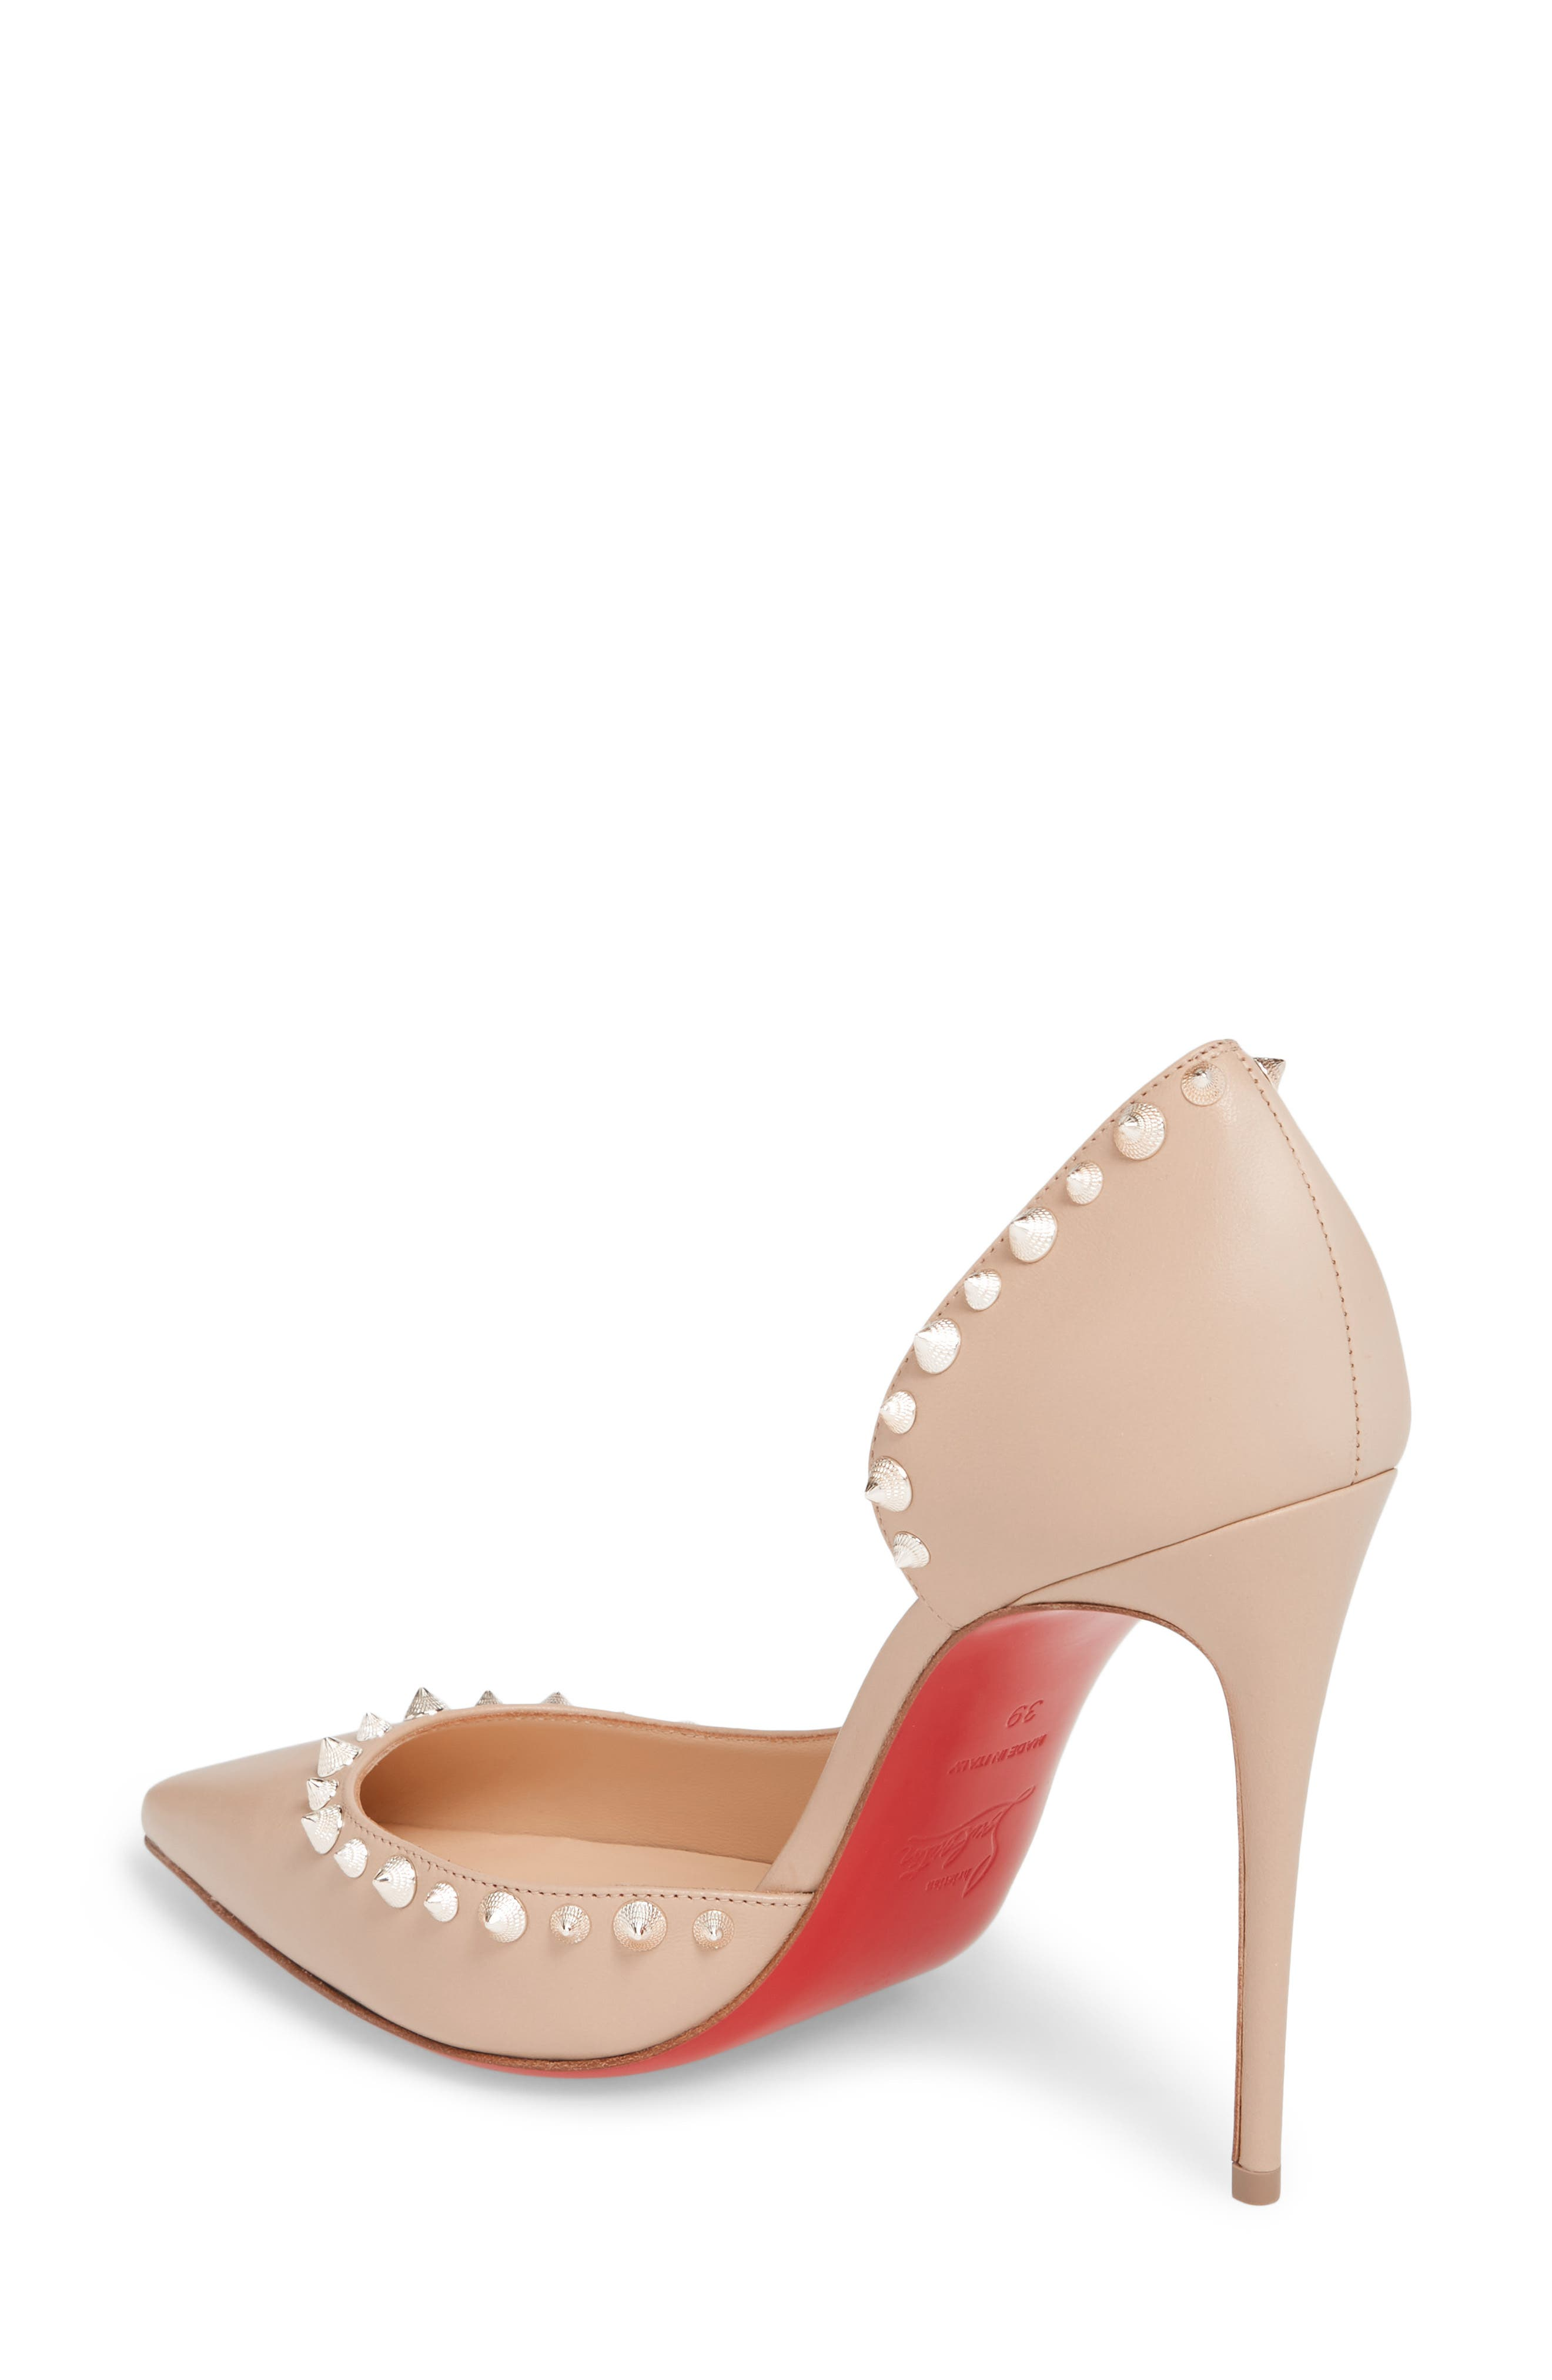 Irishell Studded Half d'Orsay Pump,                             Alternate thumbnail 2, color,                             Nude/ White Gold